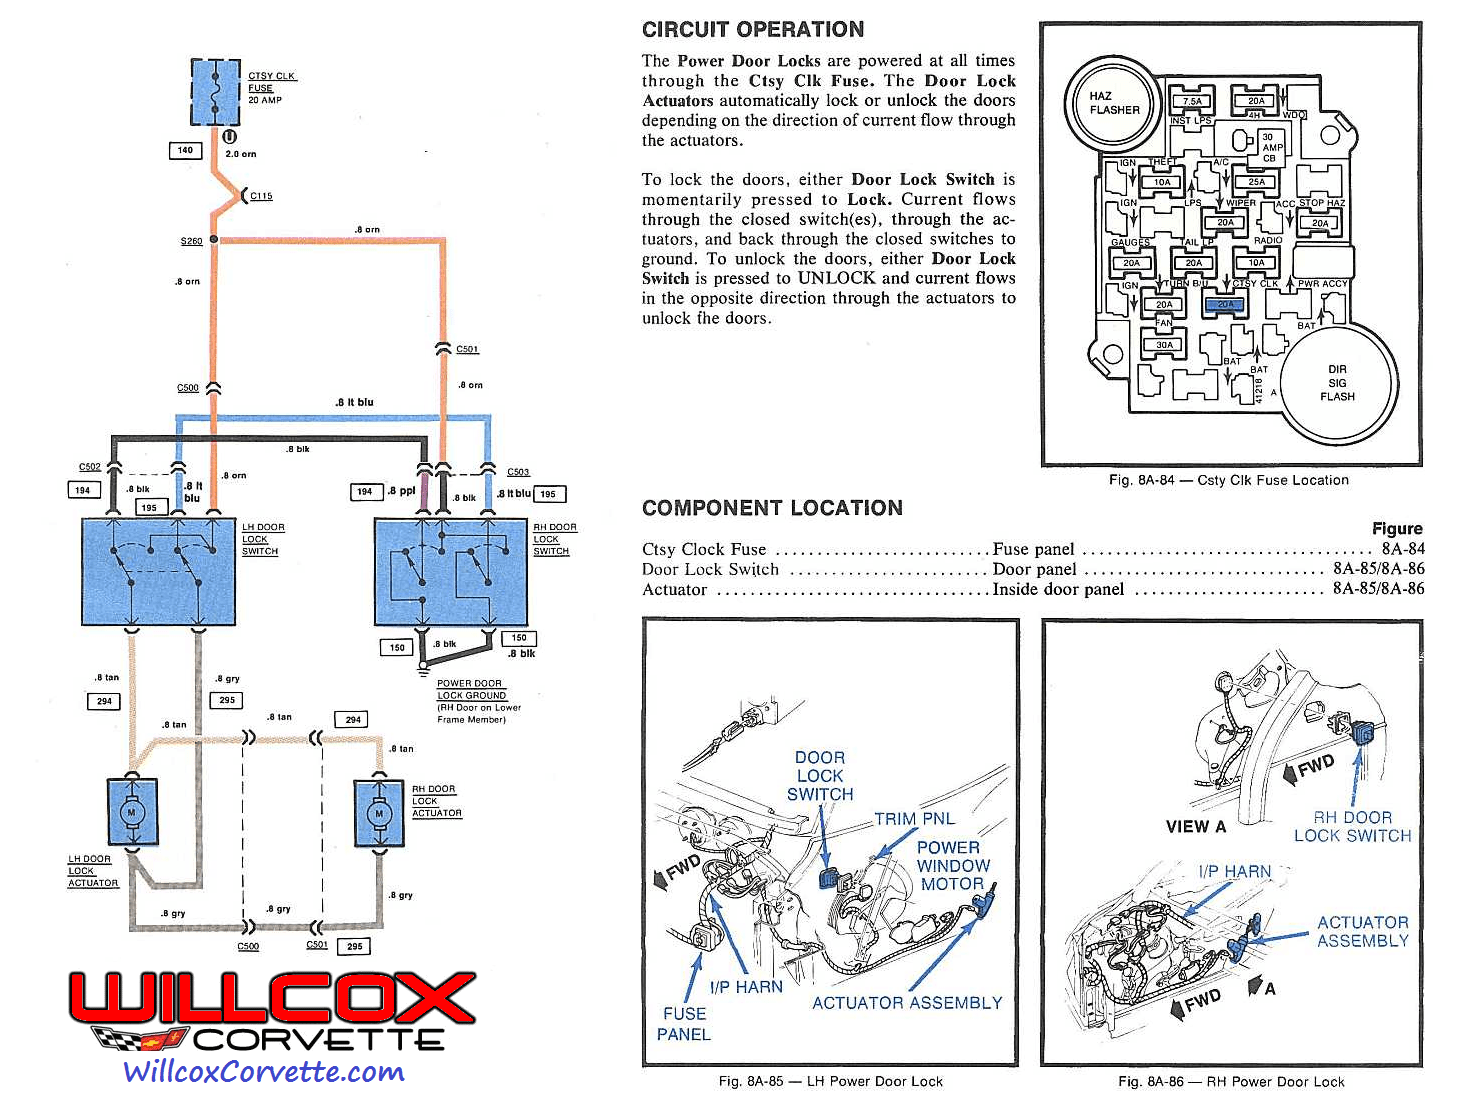 central door lock wiring diagram 2004 dodge dakota locking actuator schematic